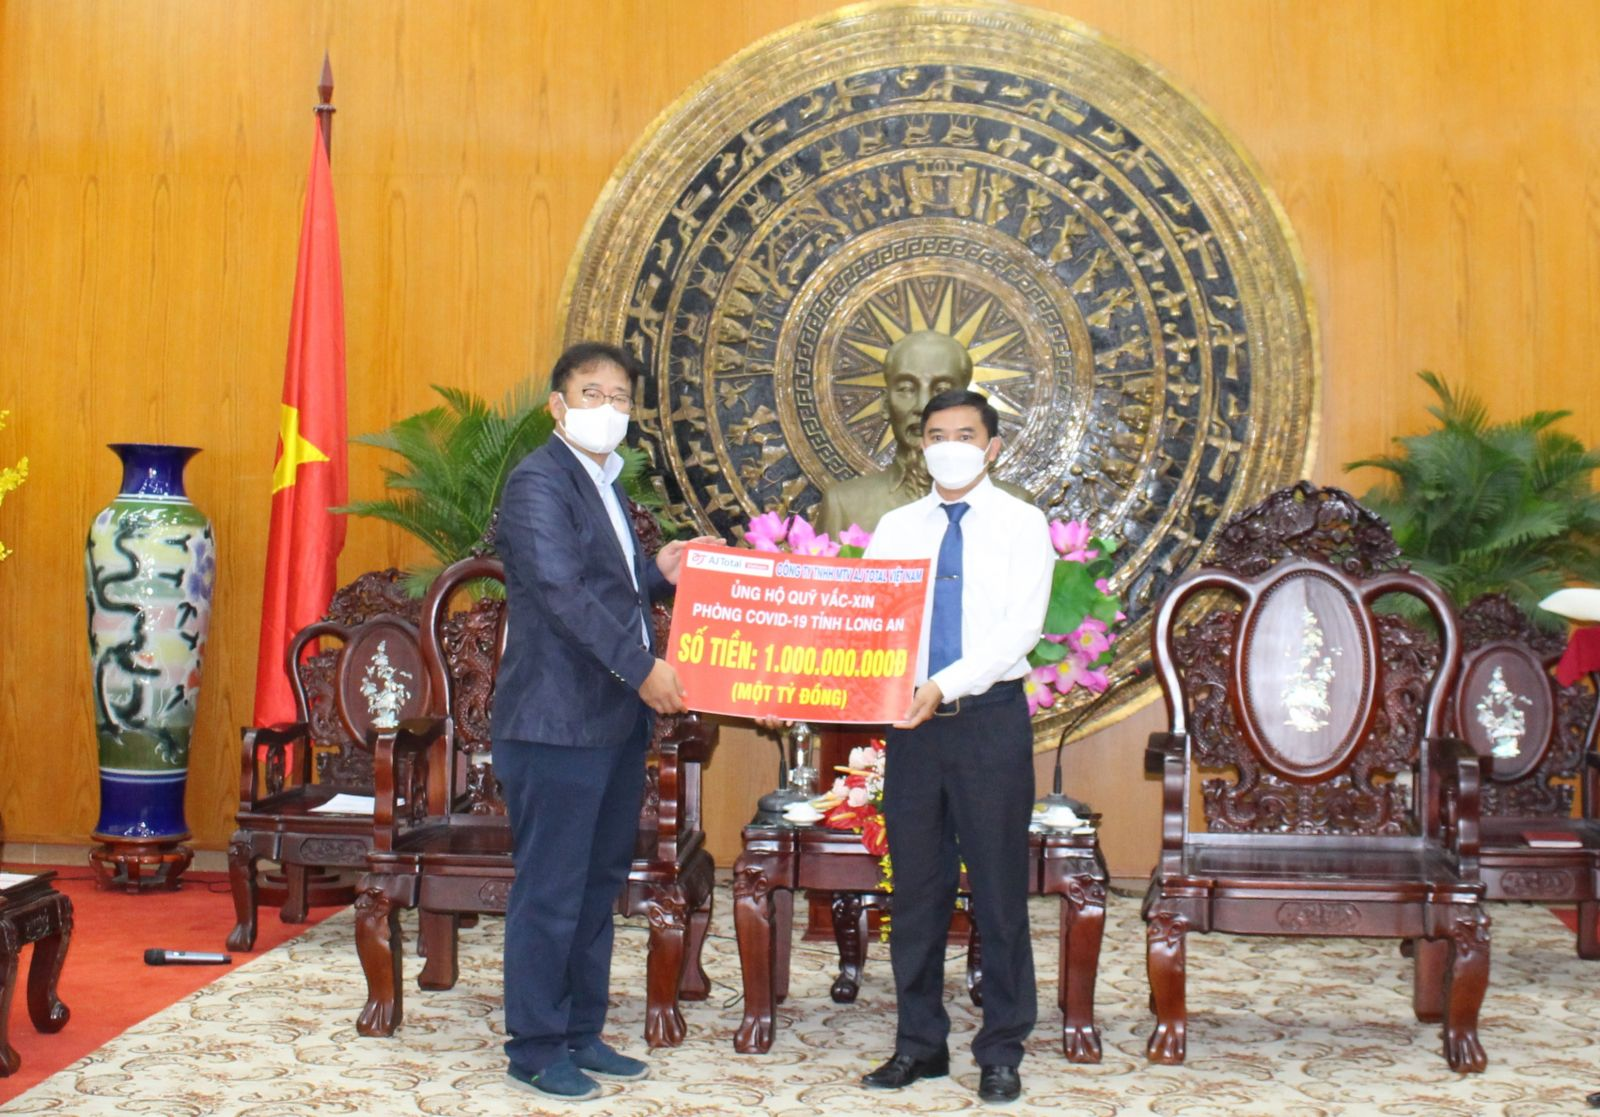 Leaders of AJ TOTAL Vietnam Co., Ltd. support Long An Covid-19 vaccine fund